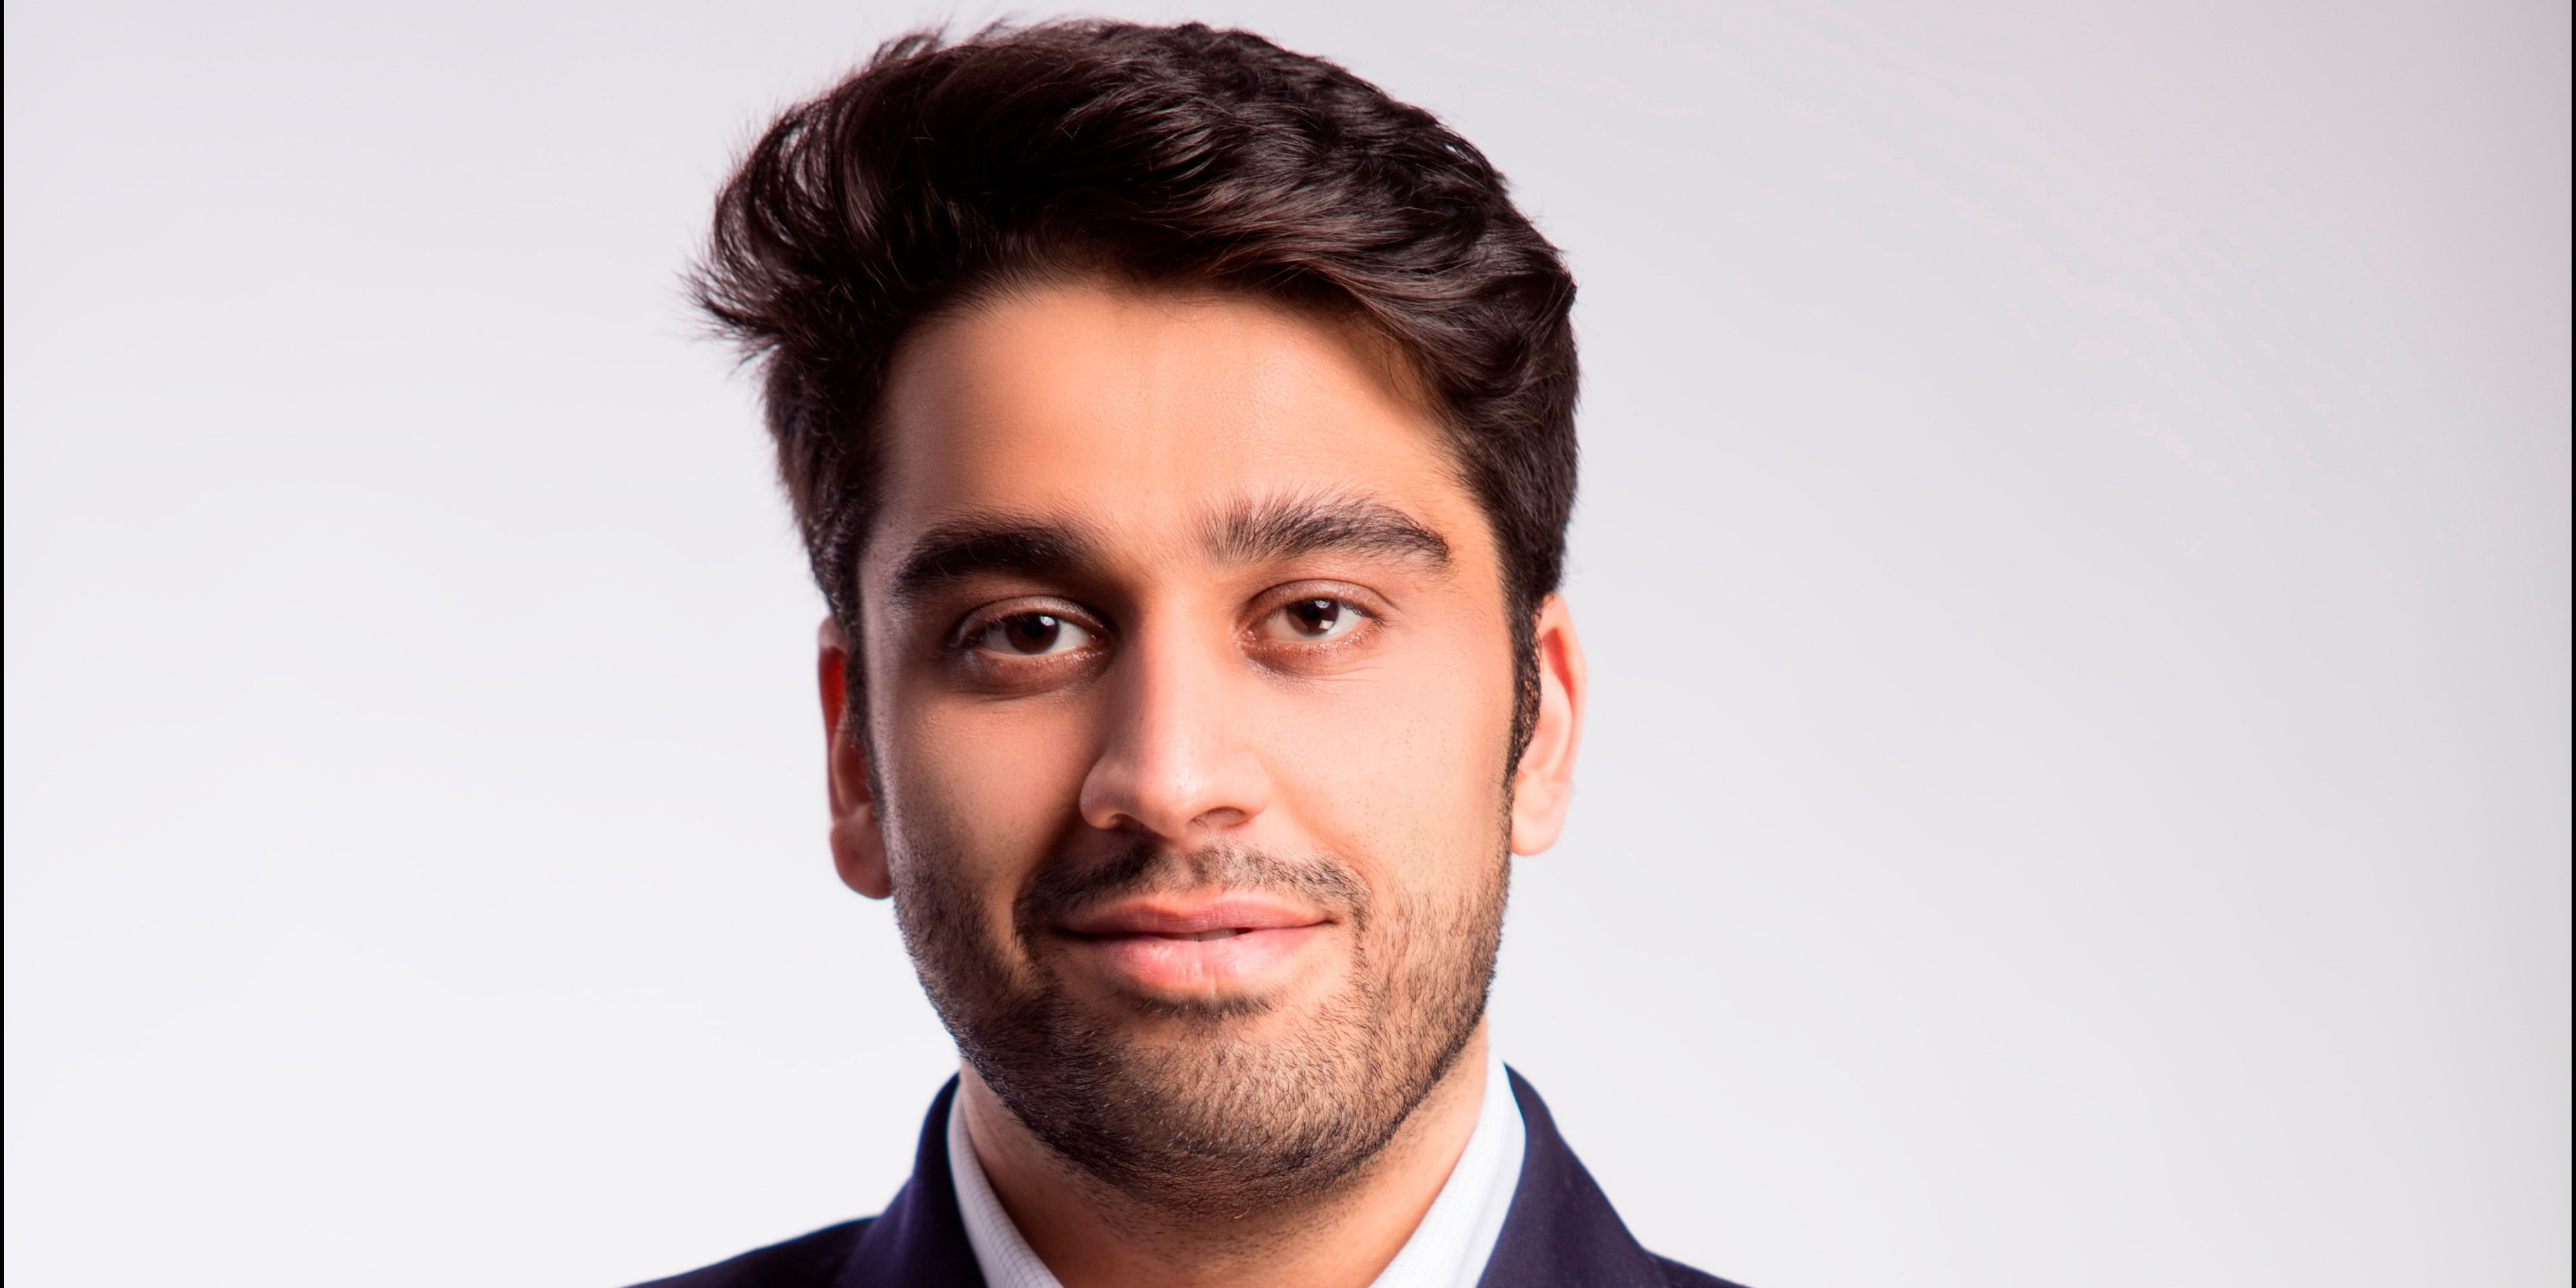 Sanchit Baweja, Co-Founder & Chief Business Officer at Stage3